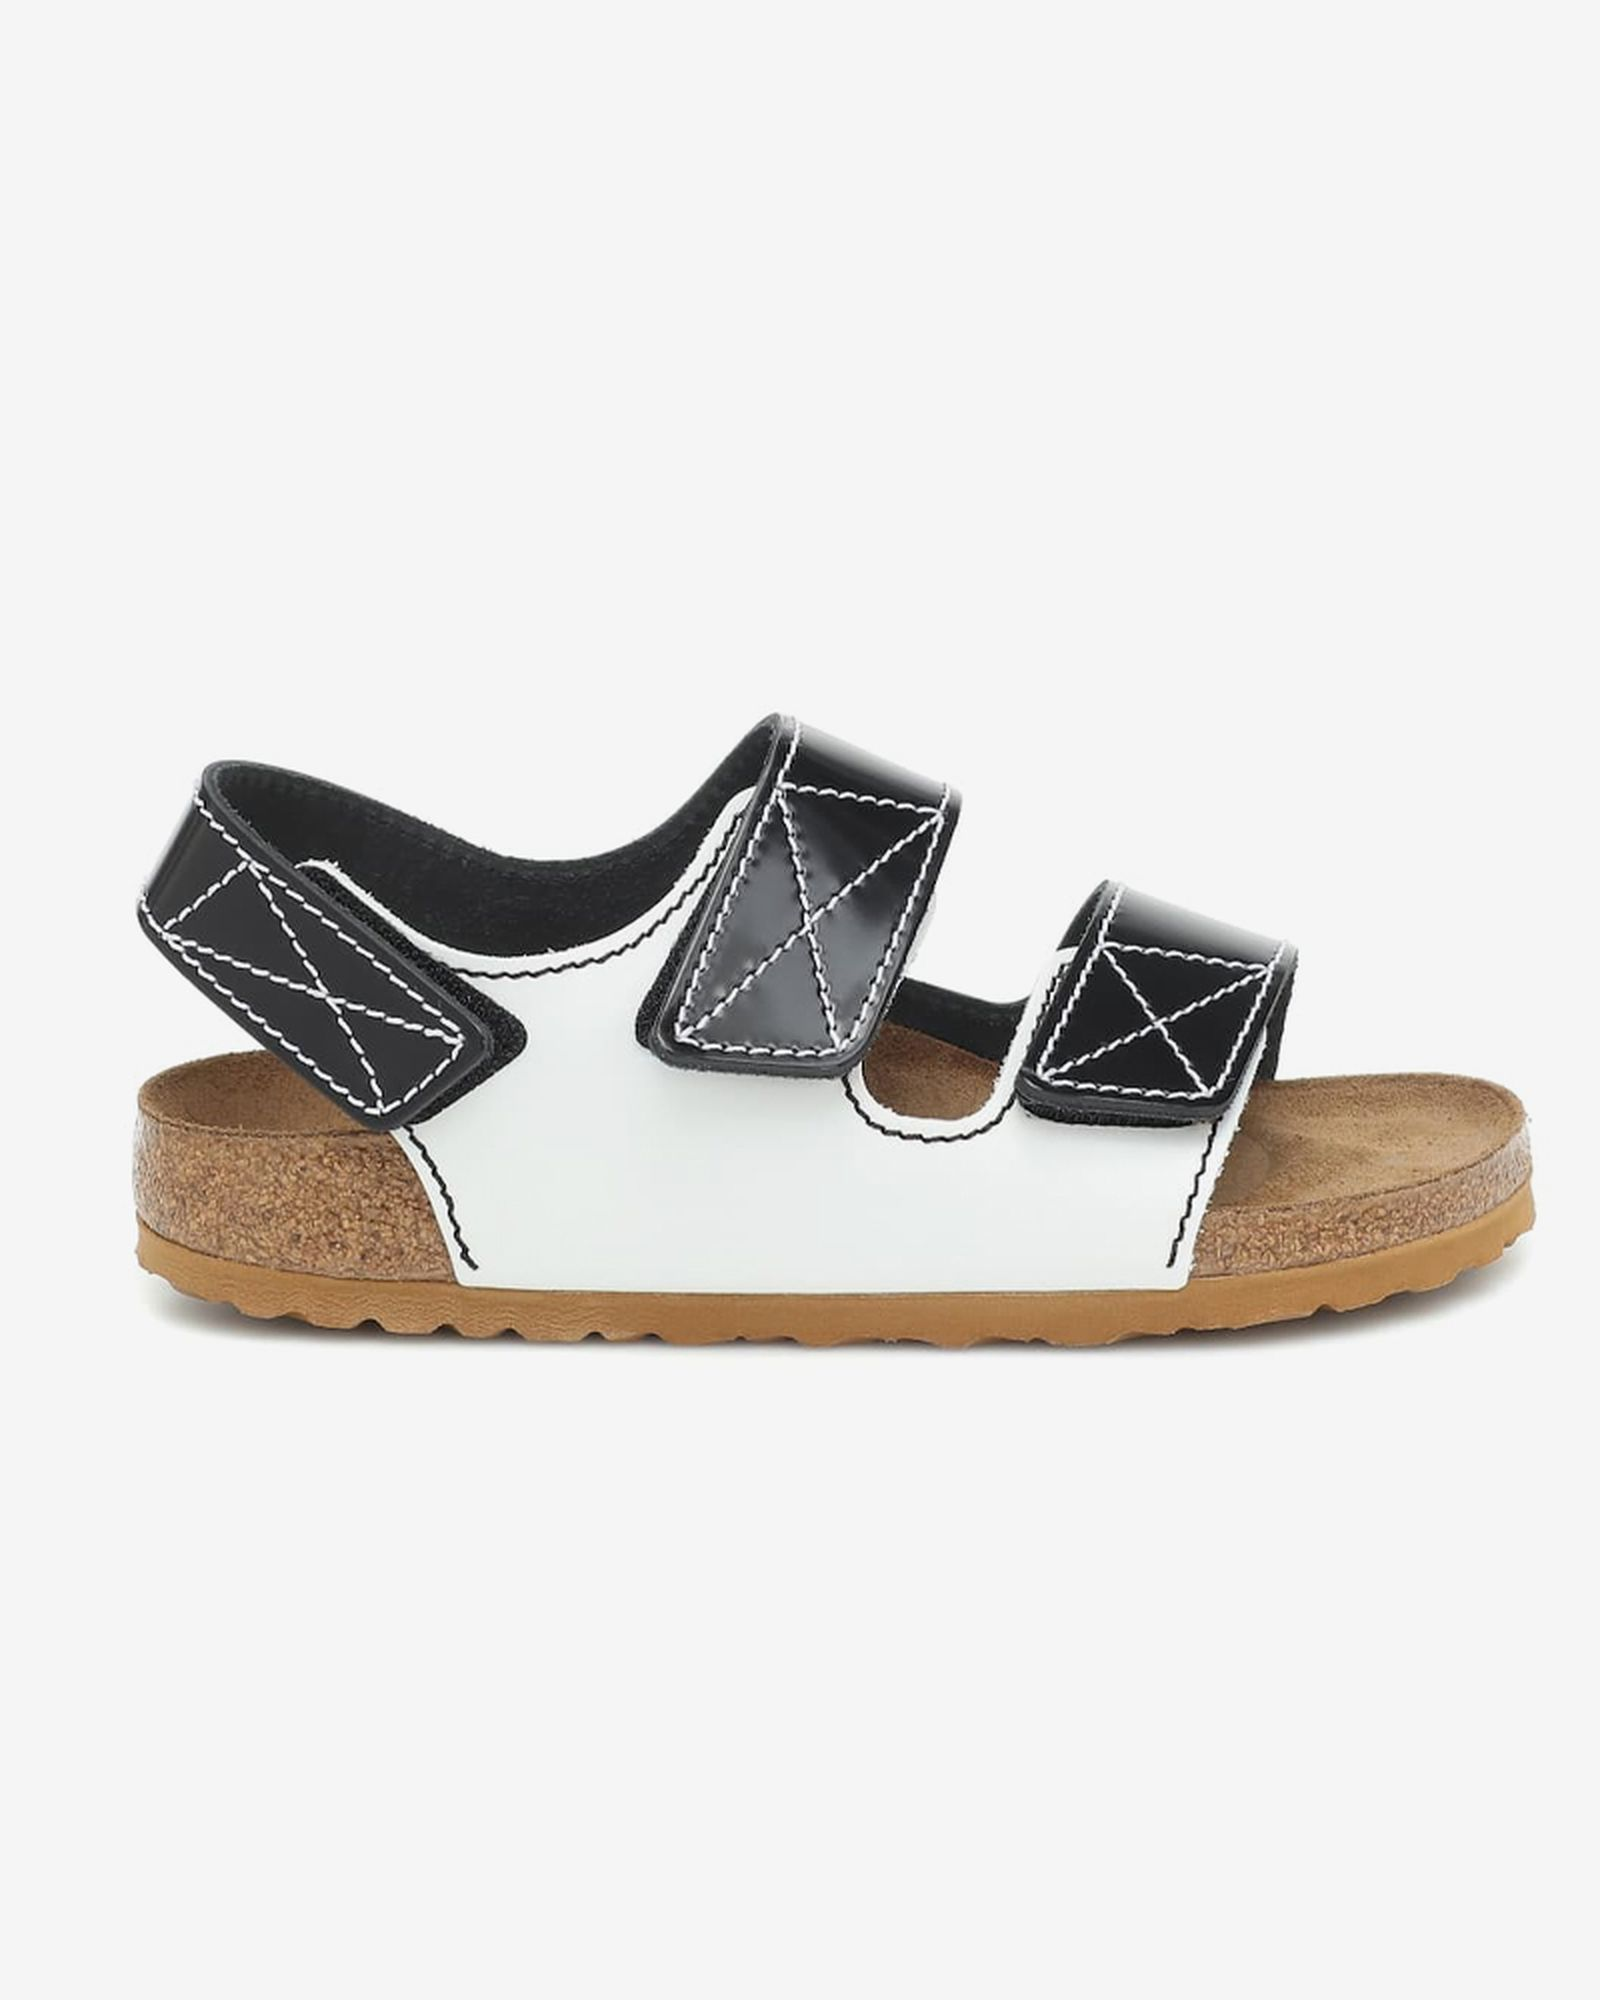 dad-sandals-roundtable-shopping-guide-11